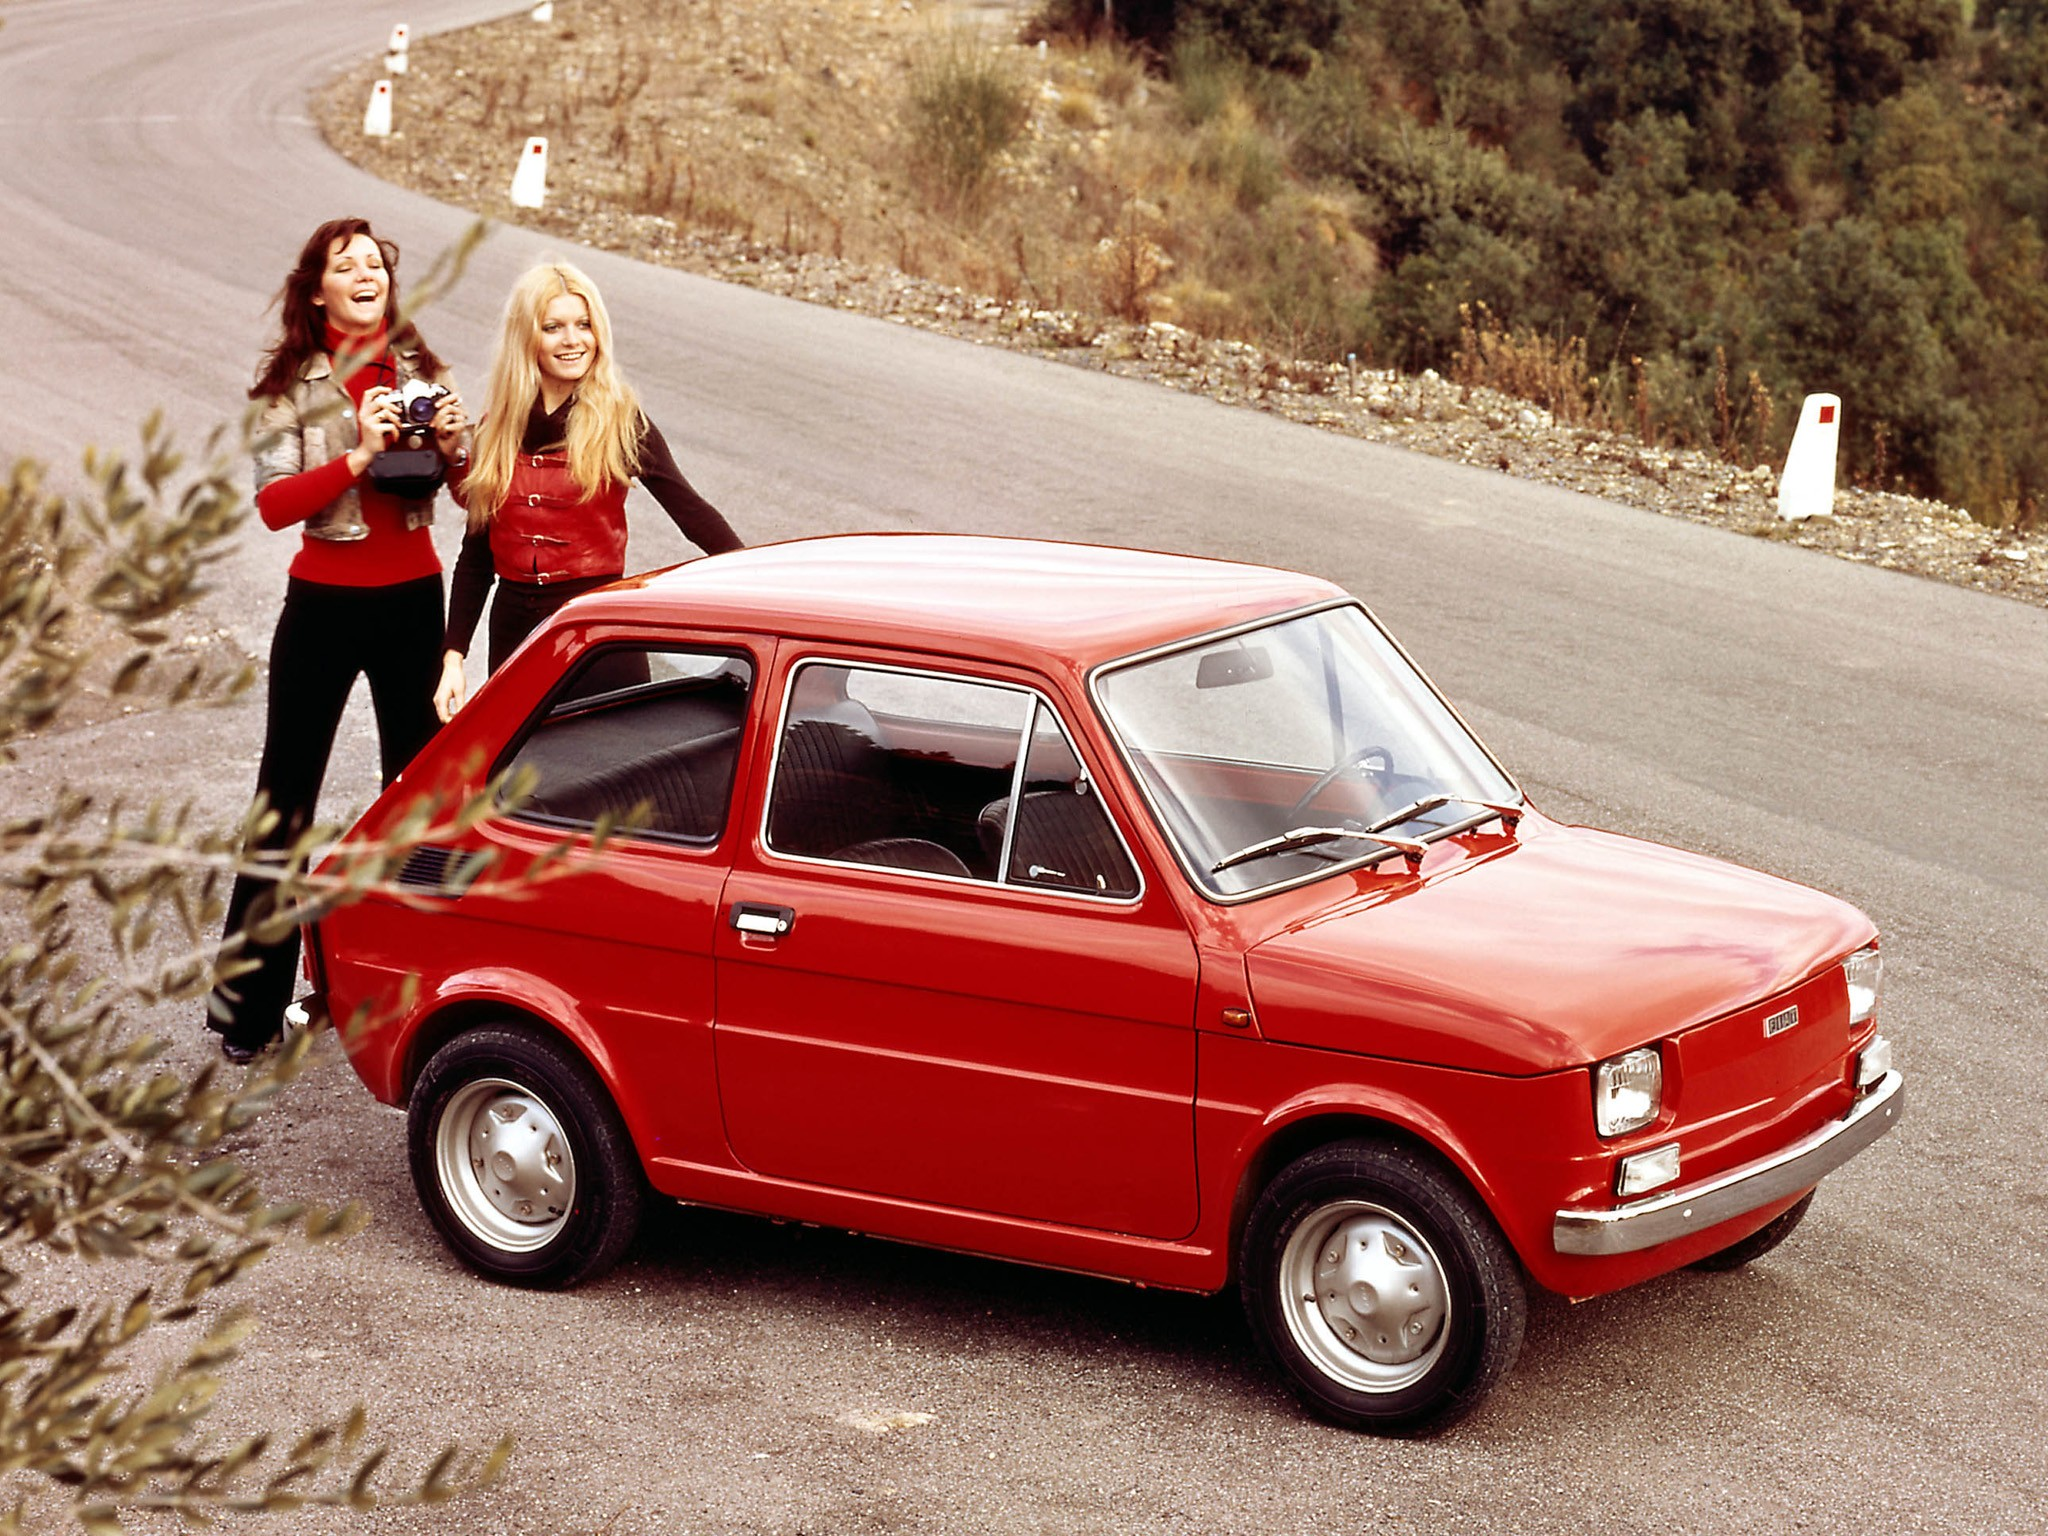 fiat 126 specs photos 1972 1973 1974 1975 1976 1977 1978 1979 1980 1981 1982 1983 1984 1985 1986 1987 1988 1989 1990 1991 1992 1993 1994 1995 1996 1997 1998 1999 2000 autoevolution fiat 126 specs photos 1972 1973